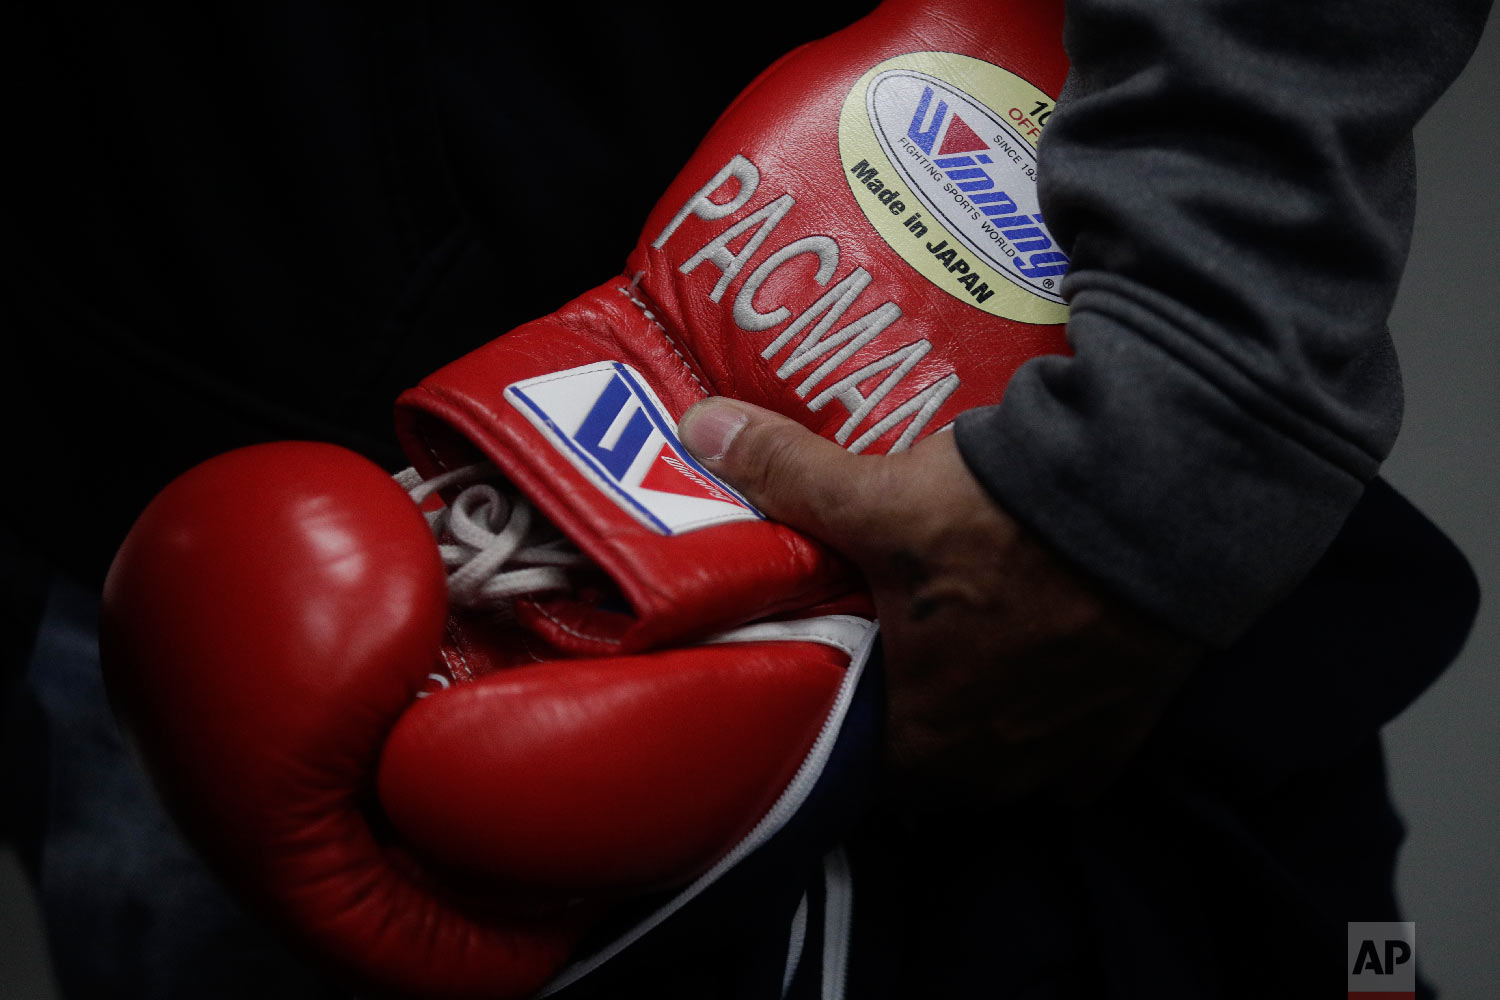 A trainer holds Pacquiao's gloves with Pacquiao's nickname. (AP Photo/Jae C. Hong)